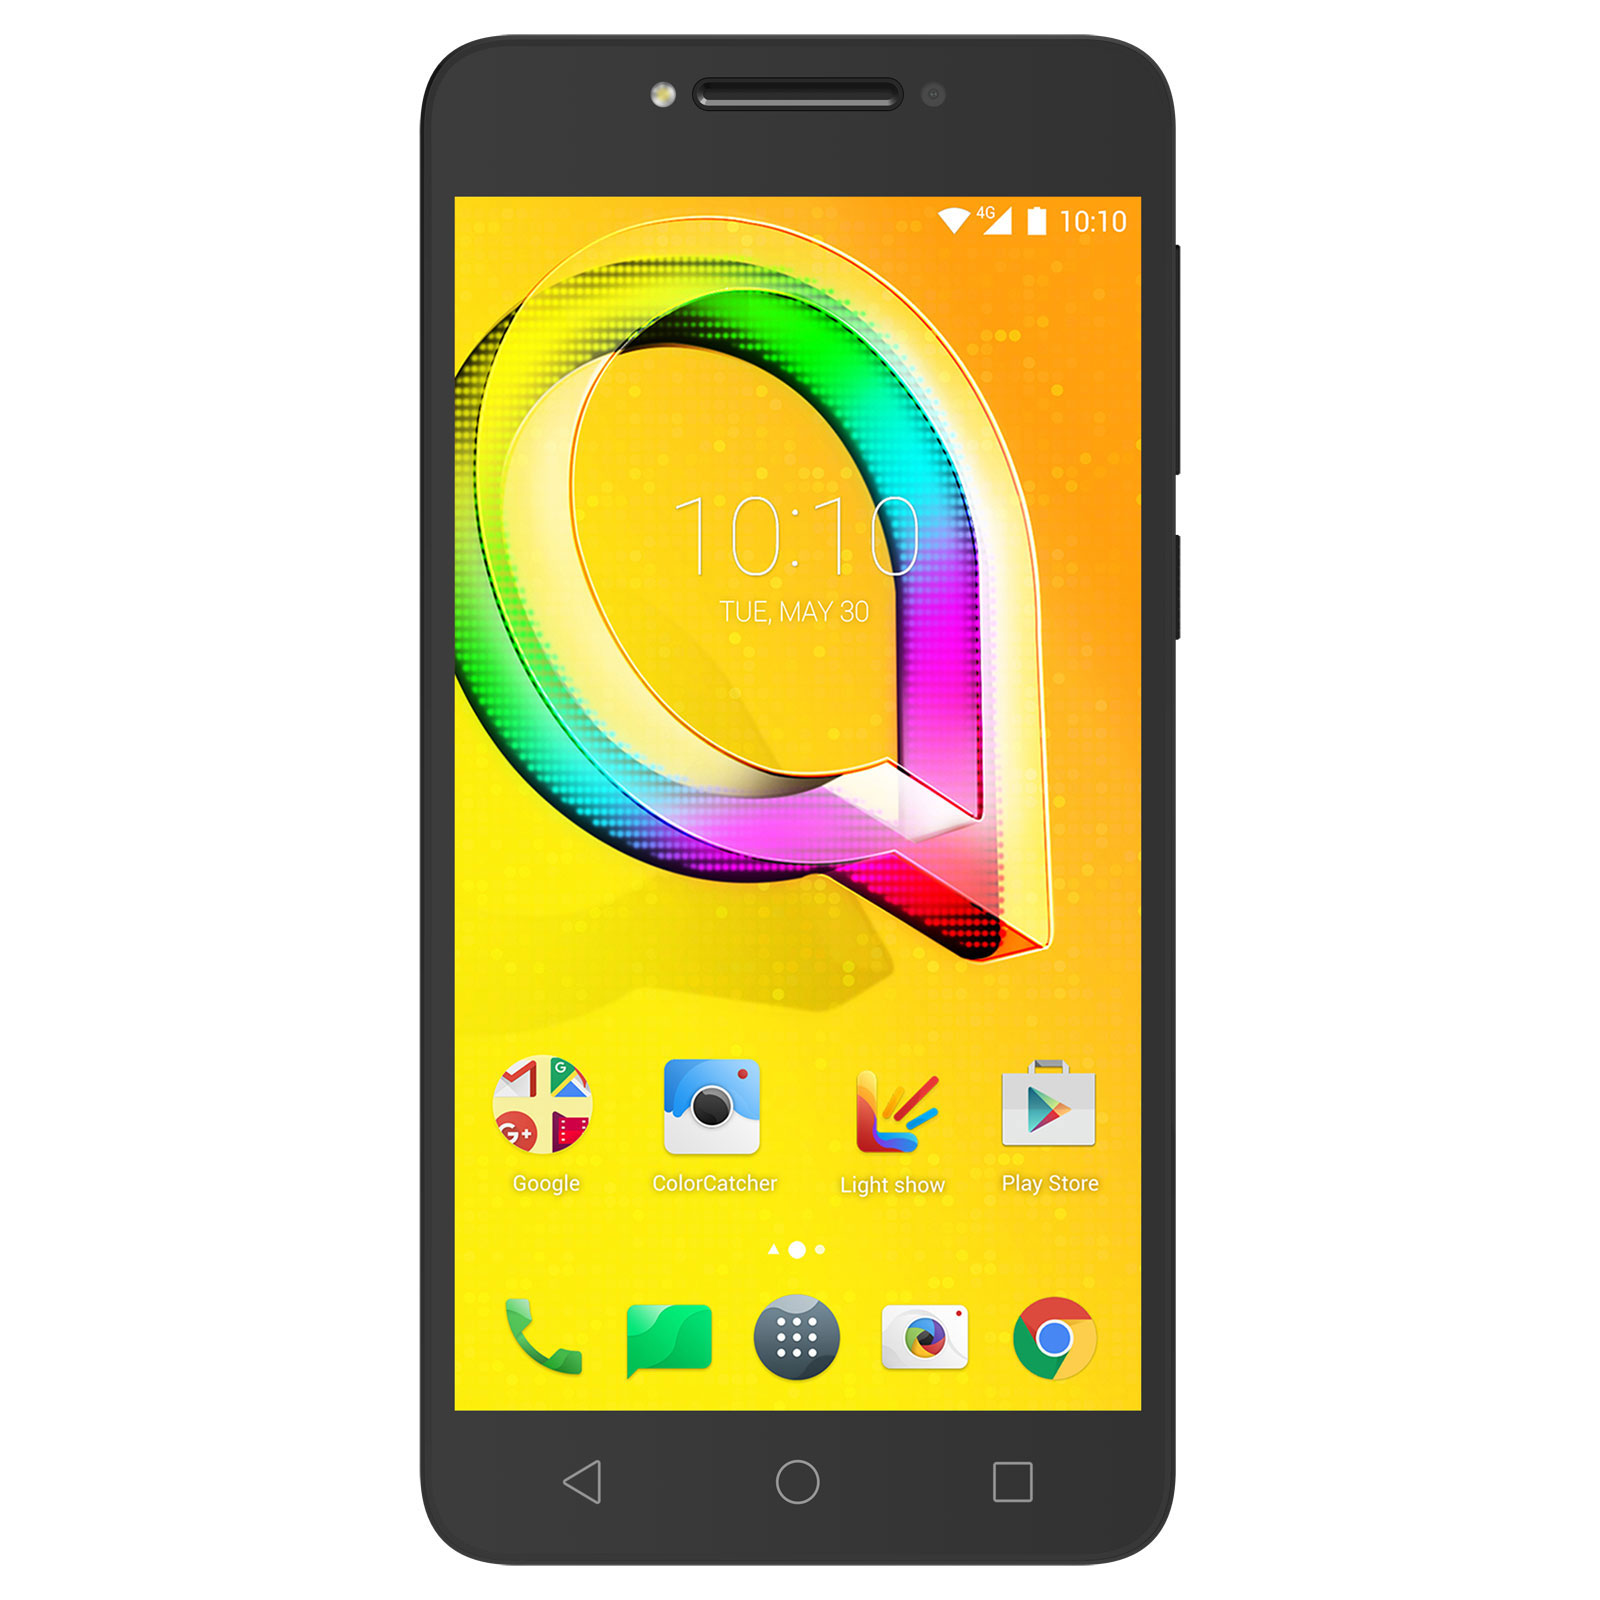 "Mobile & smartphone Alcatel A5 LED Noir Smartphone 4G LTE - MediaTek MT6753 8-Core 1.5 GHz - RAM 2 Go - Ecran tactile 5.2"" 720 x 1280 - 16 Go - Bluetooth 4.1 - 2800 mAh - Android 6.0"